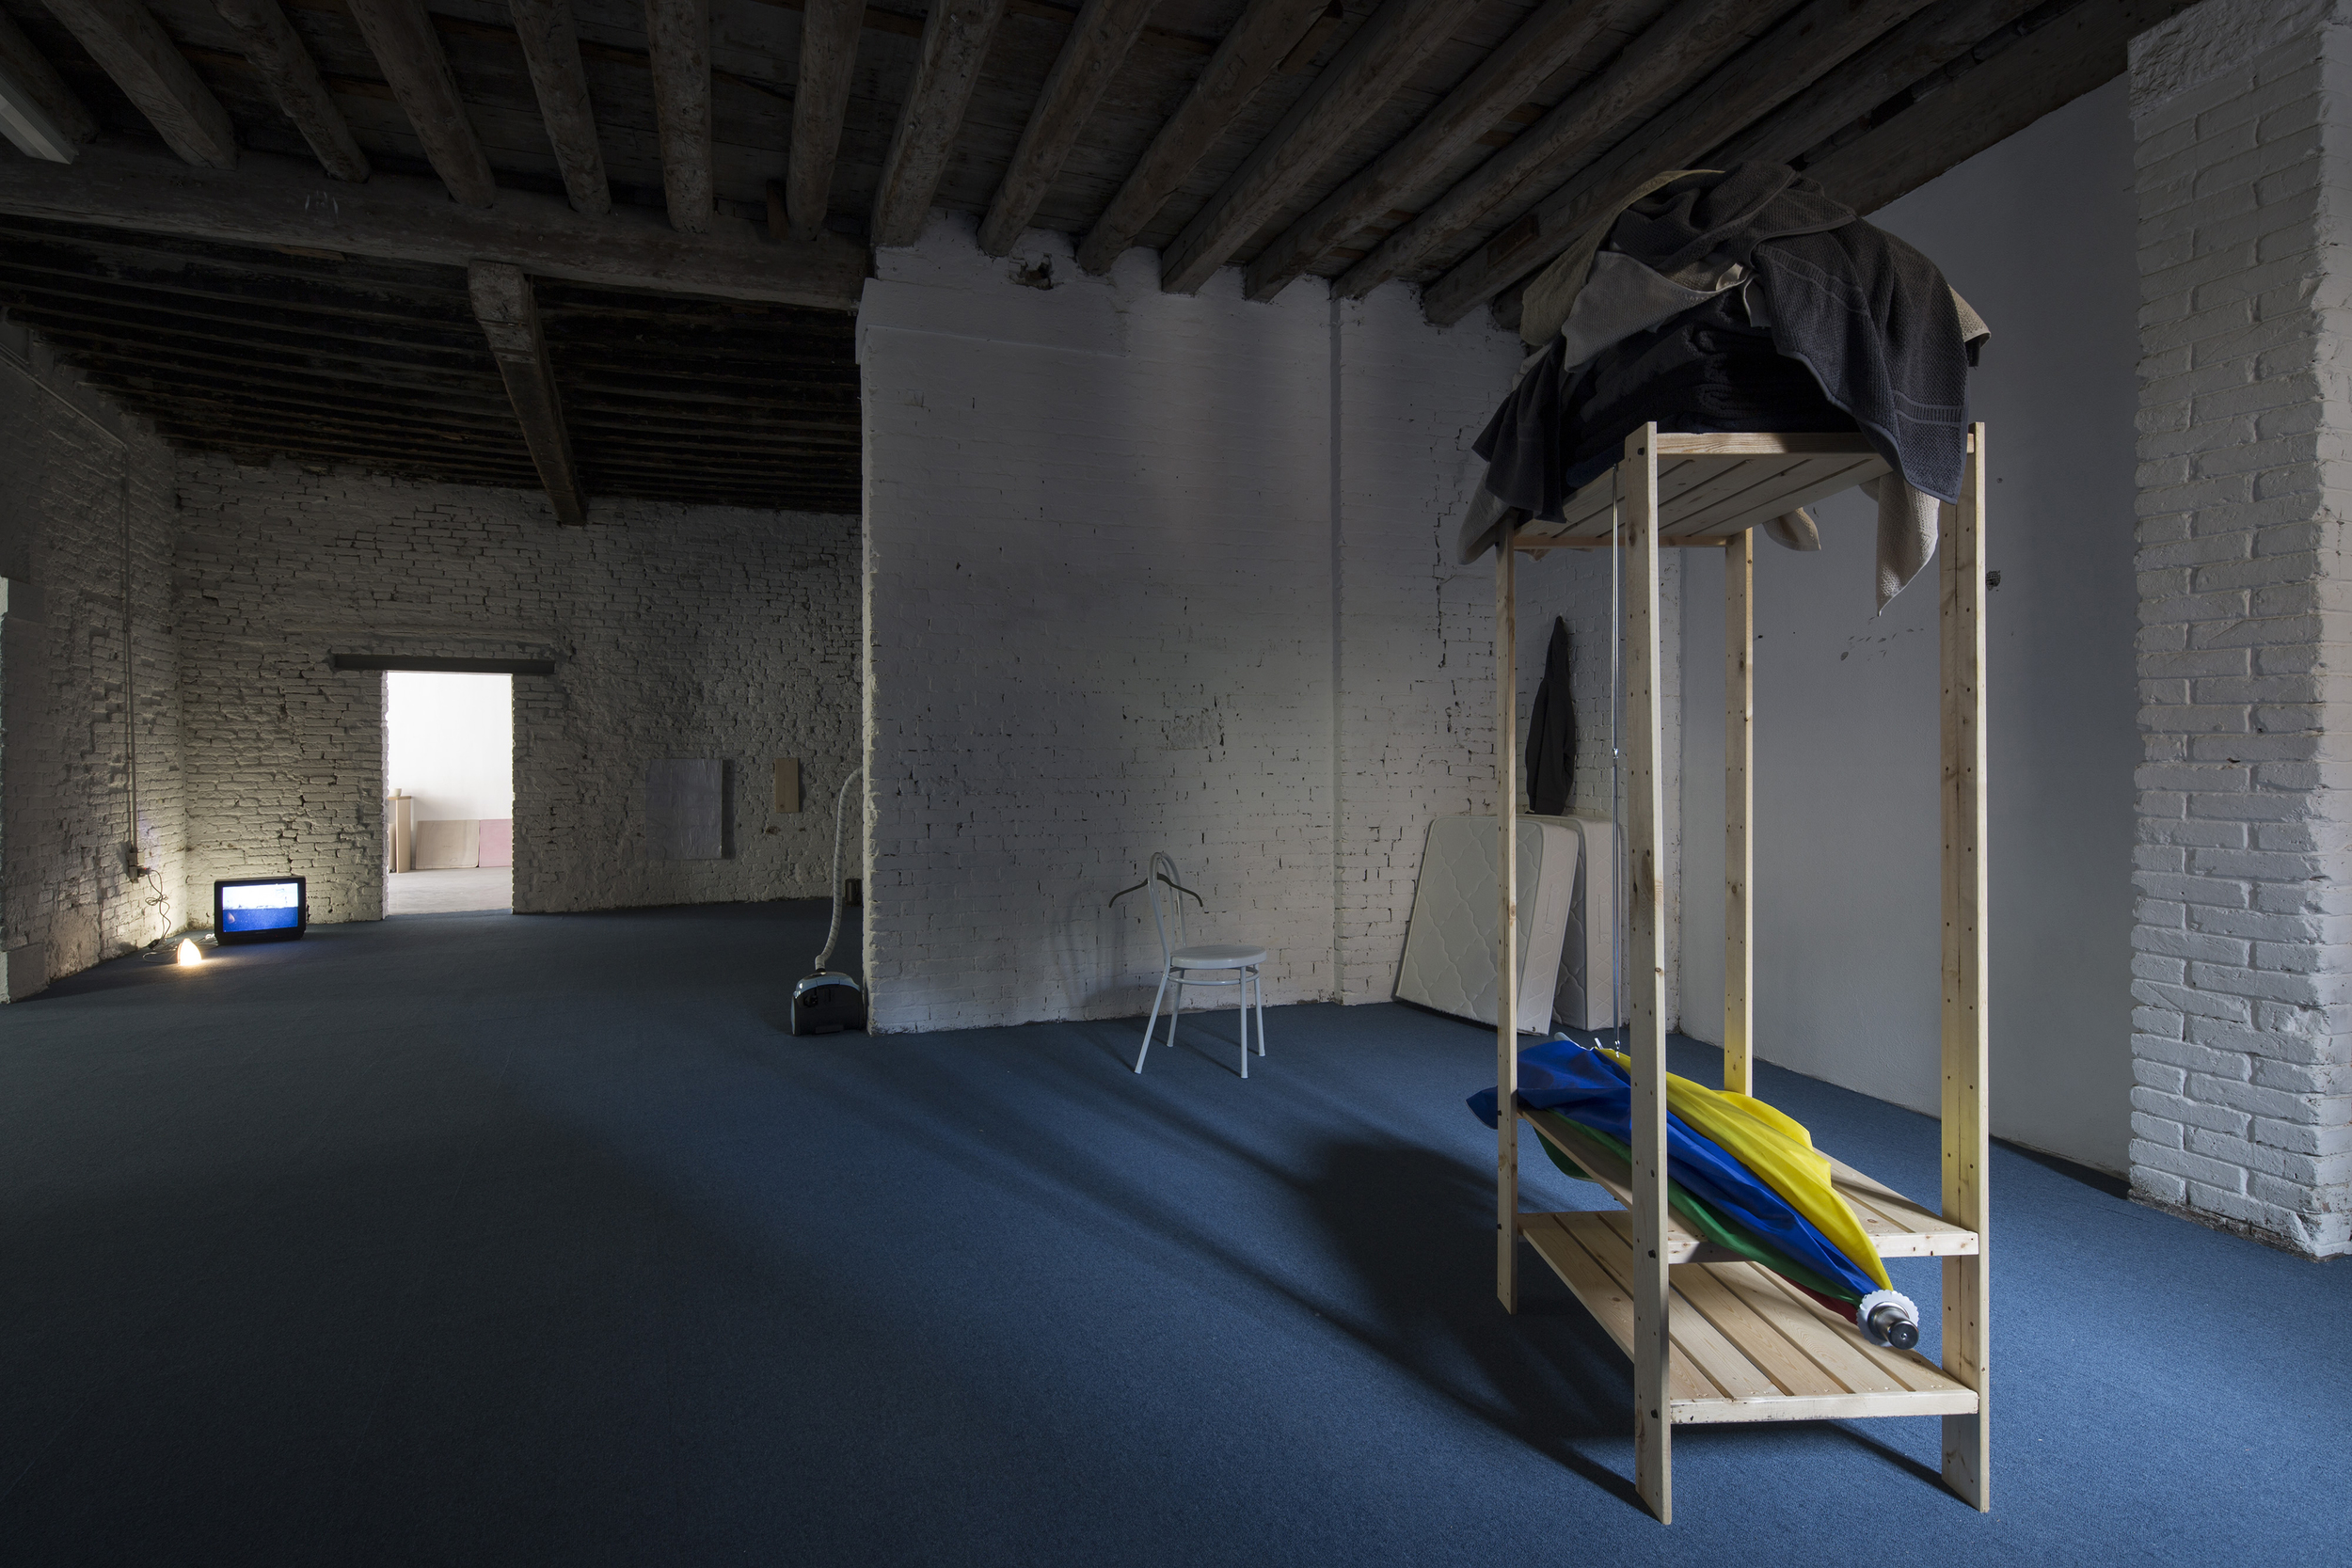 Lee Kit  ' You (you).' , 2013 Installation view at the 55th Venice Biennale Photo: David Levine ourtesy the artist, M+, WKCDA, HKADC, and Lombard Freid Gallery